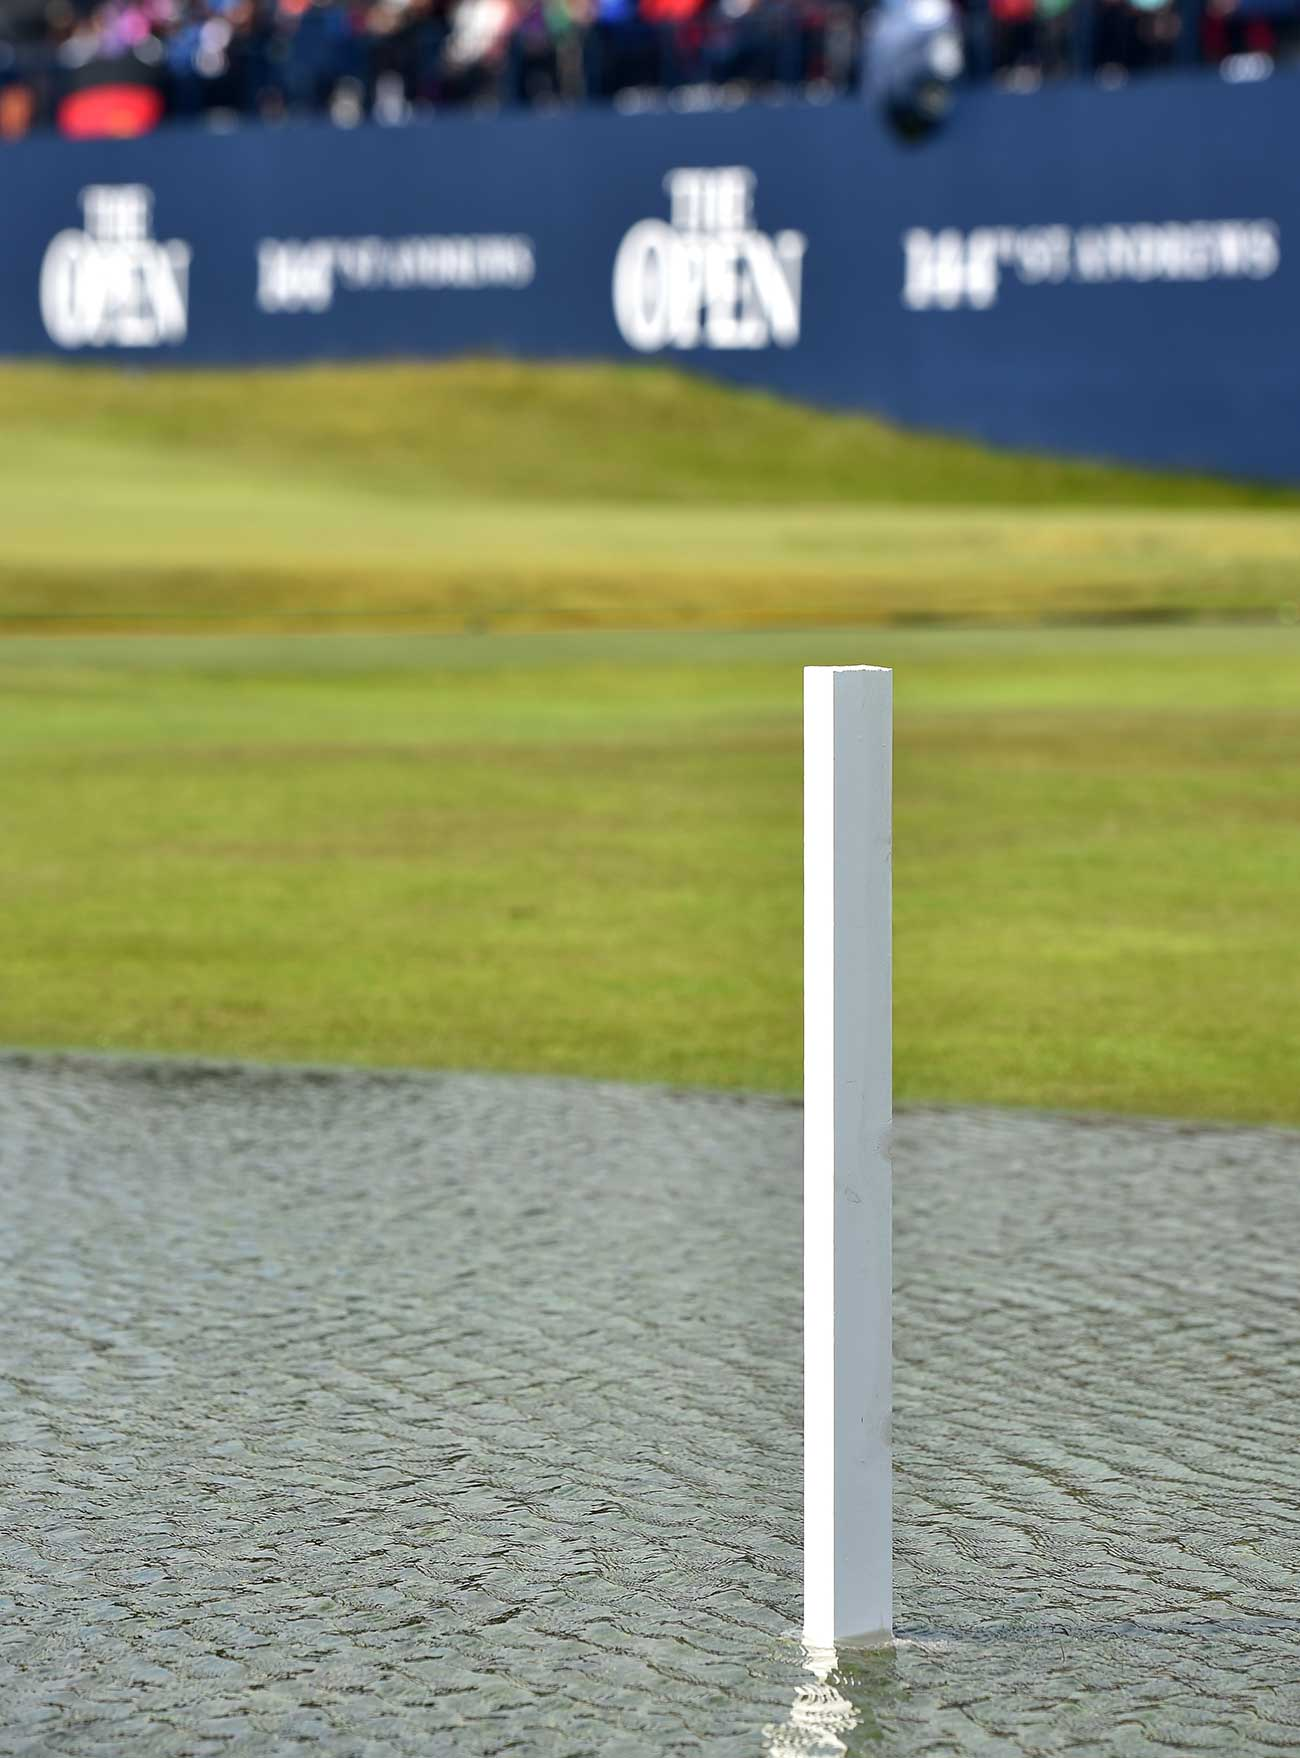 Final version of new Rules of Golf include significant changes